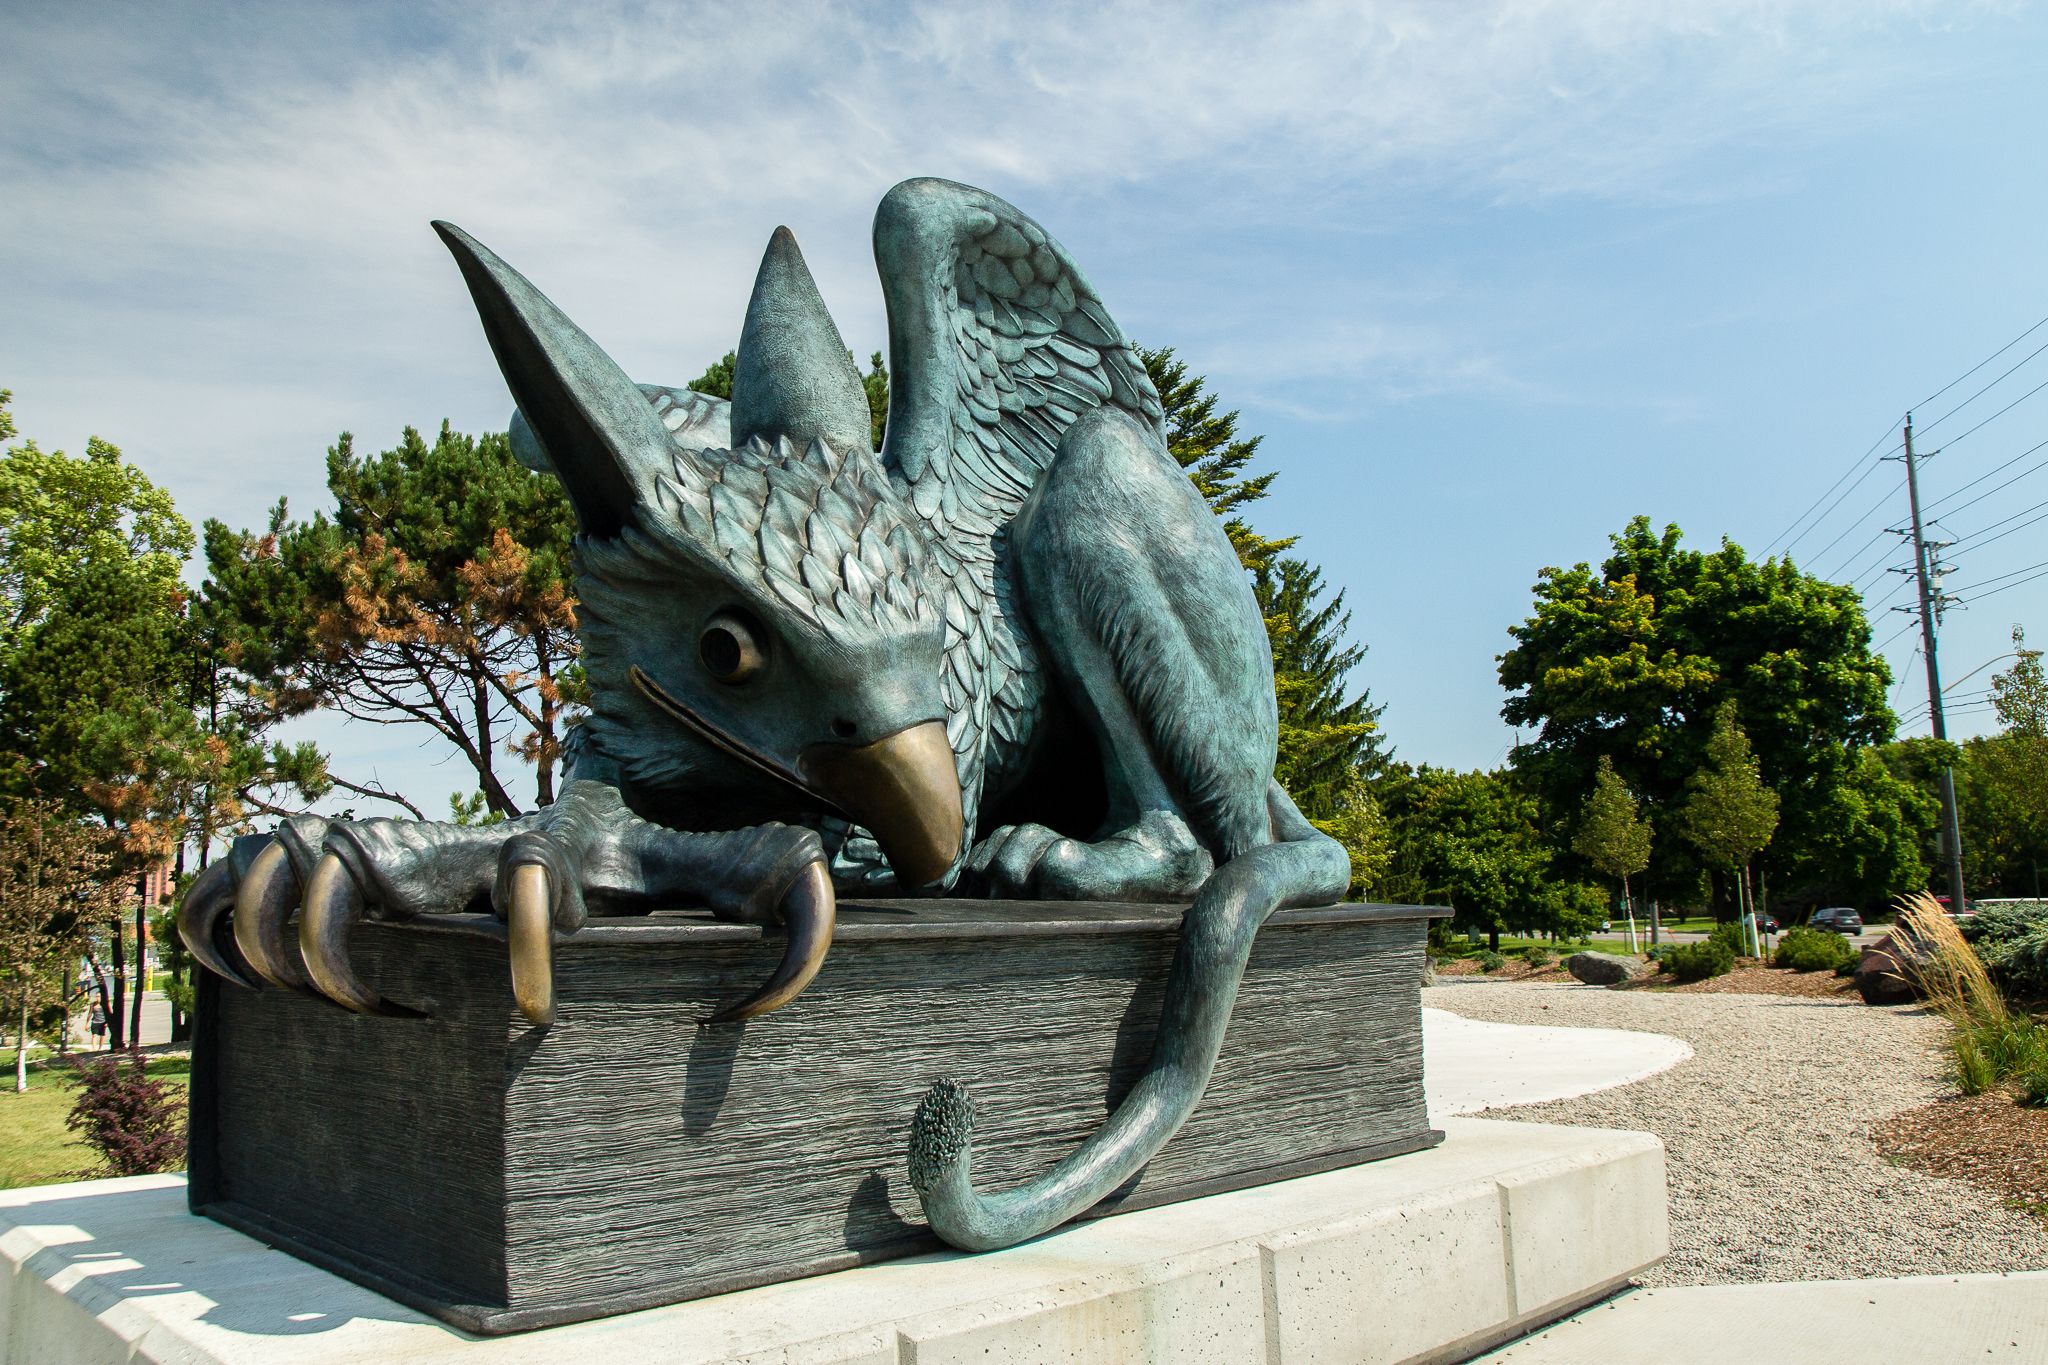 University of Guelph Gryphon statue